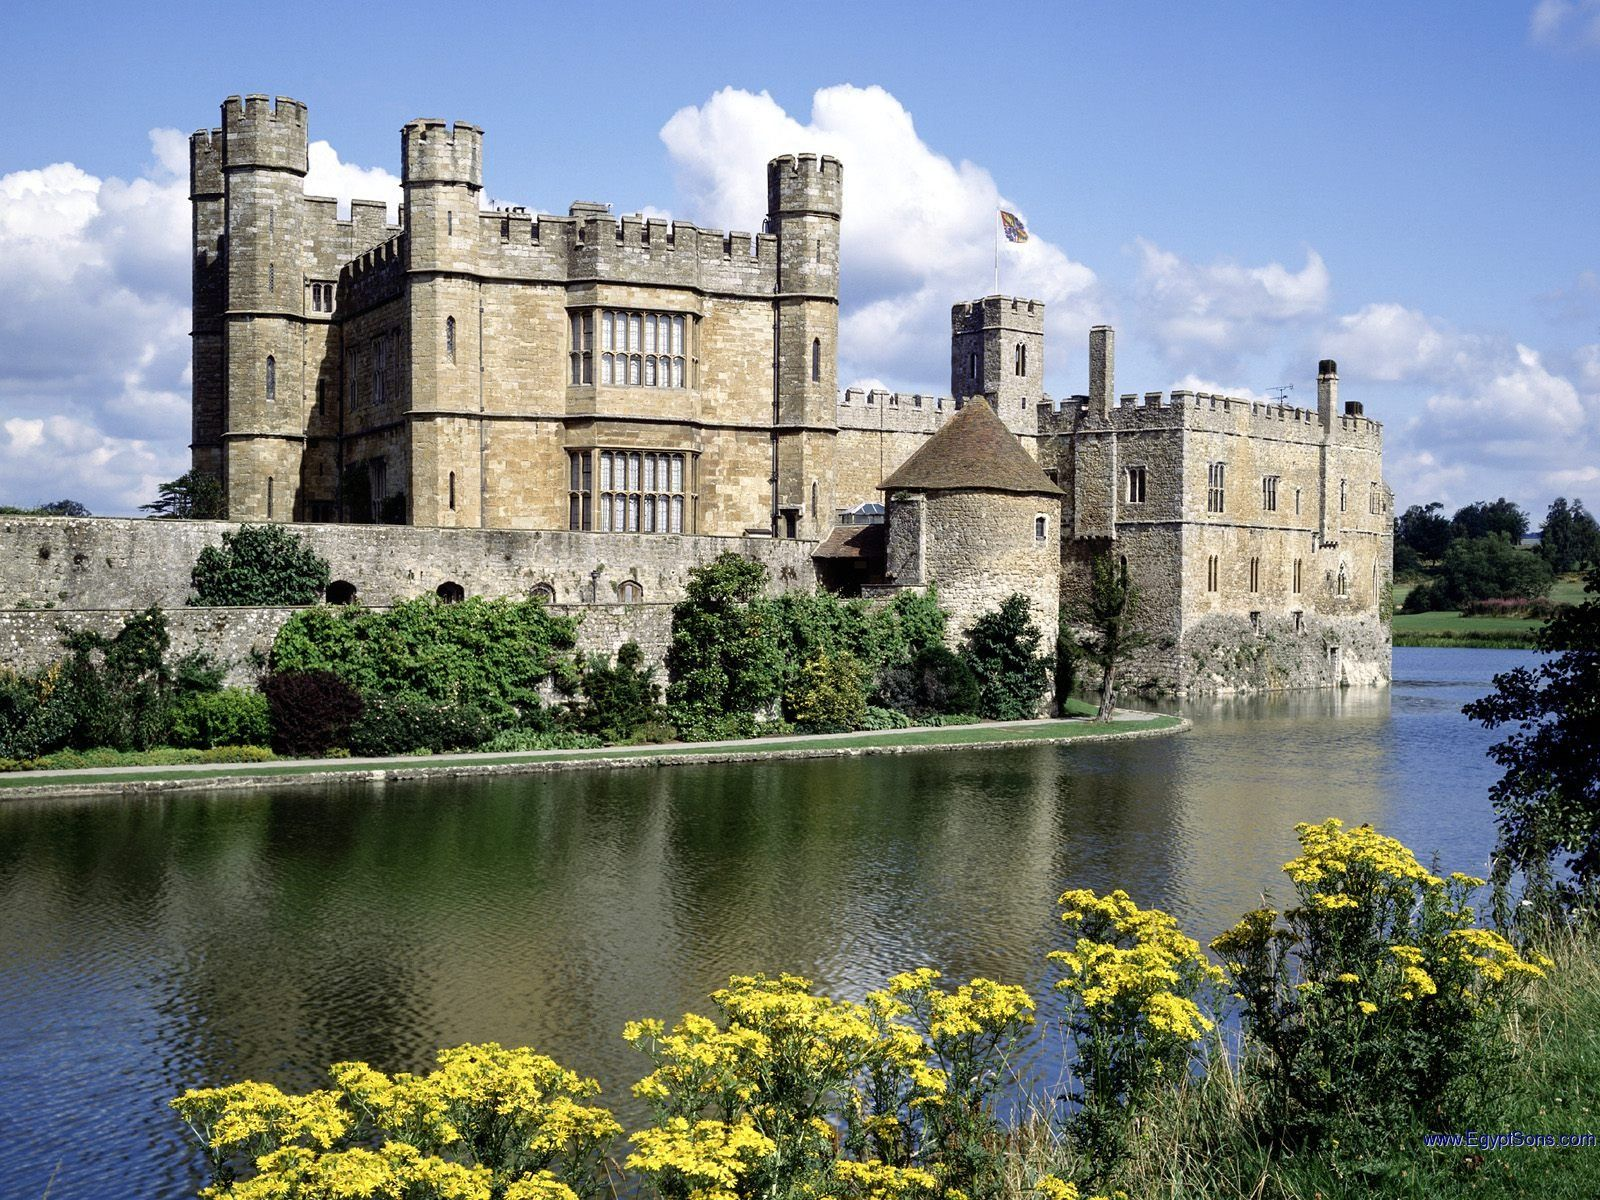 Castles:  Leeds Castle, five miles southeast of Maidstone, Kent, England. Originally a Norman stronghold built in 1119 by Robert de Crevecoeur, the castle was extensively remodeled over the centuries. It now boasts a Tudor style, completed in 1823.